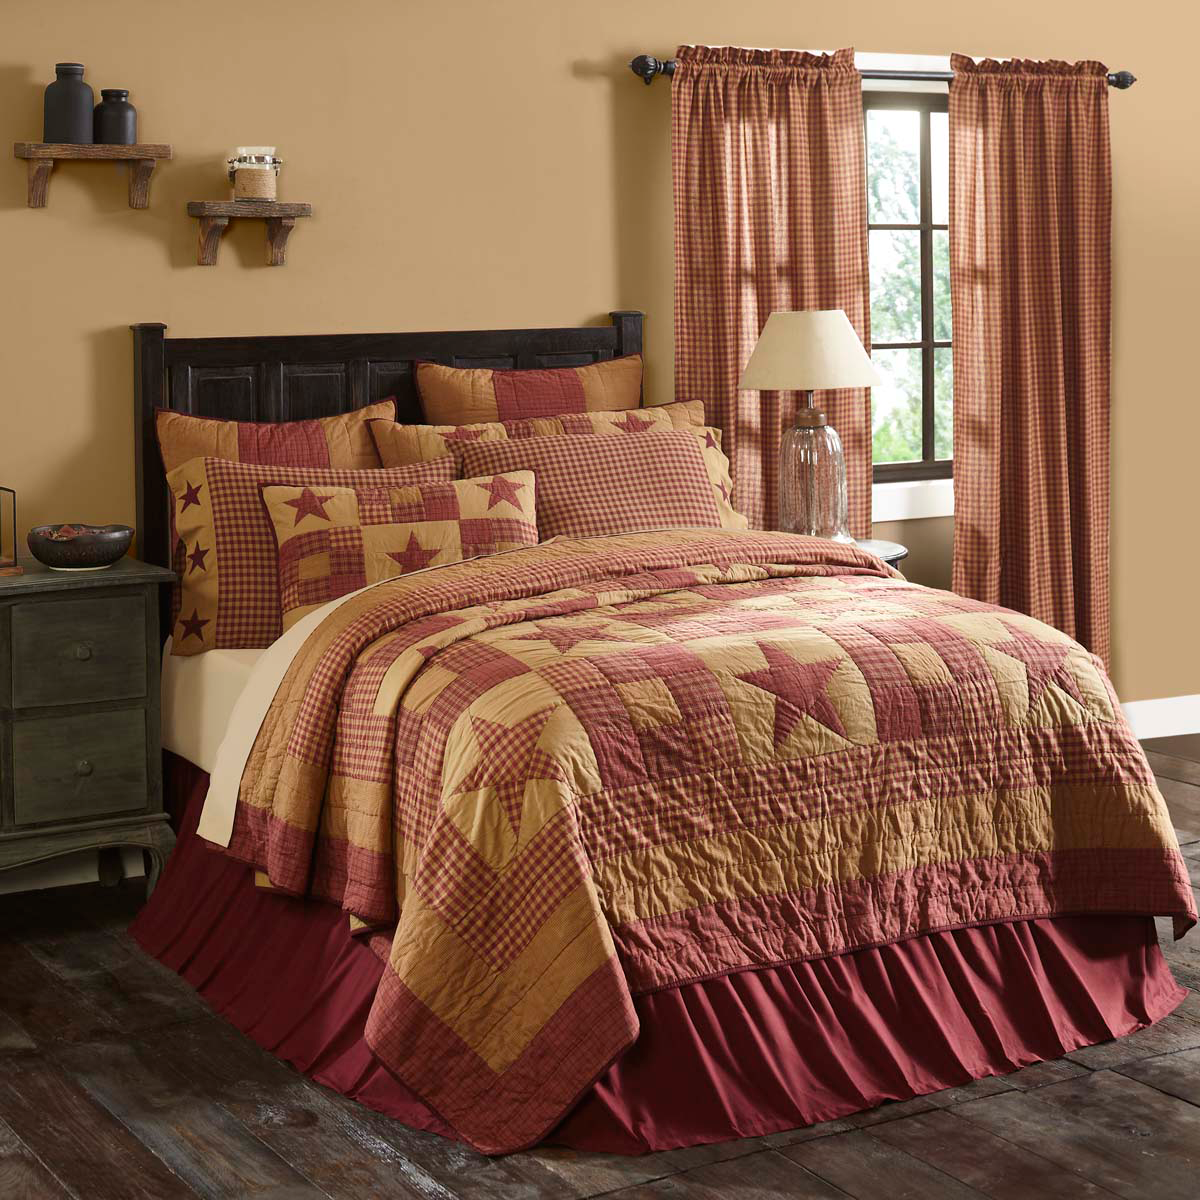 10-pc Ninepatch Star Burgundy and Tan (Queen) Quilt Set - Lots of Accessories!